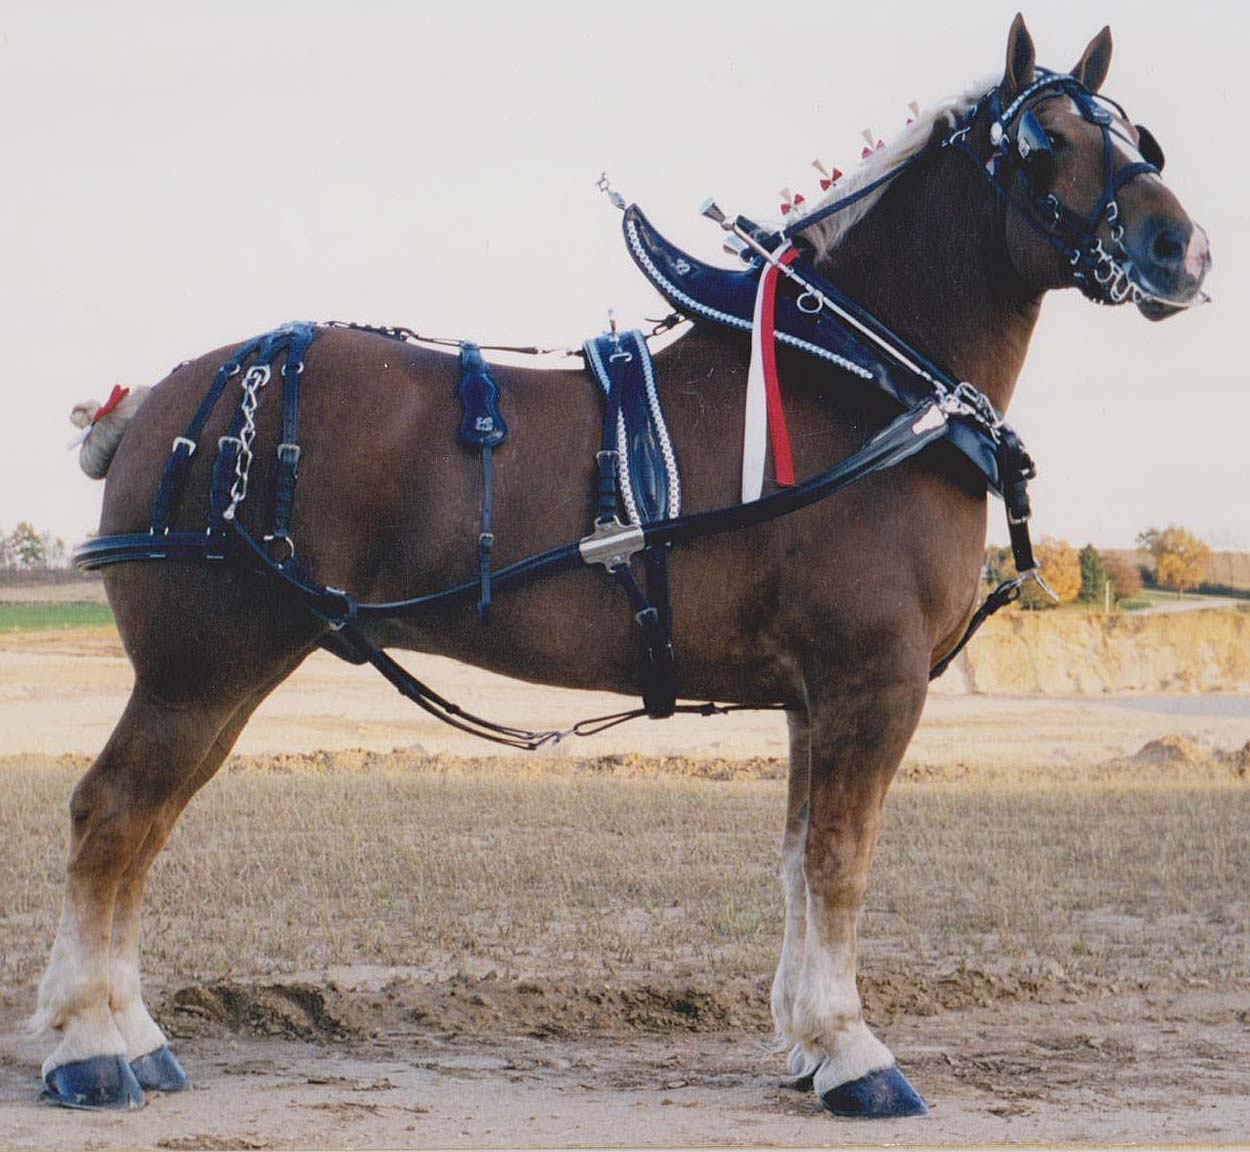 draft show harness shanahan harness rh shanahanharness com Draft Horse  Harness Storage Draft Horse Harness in Use